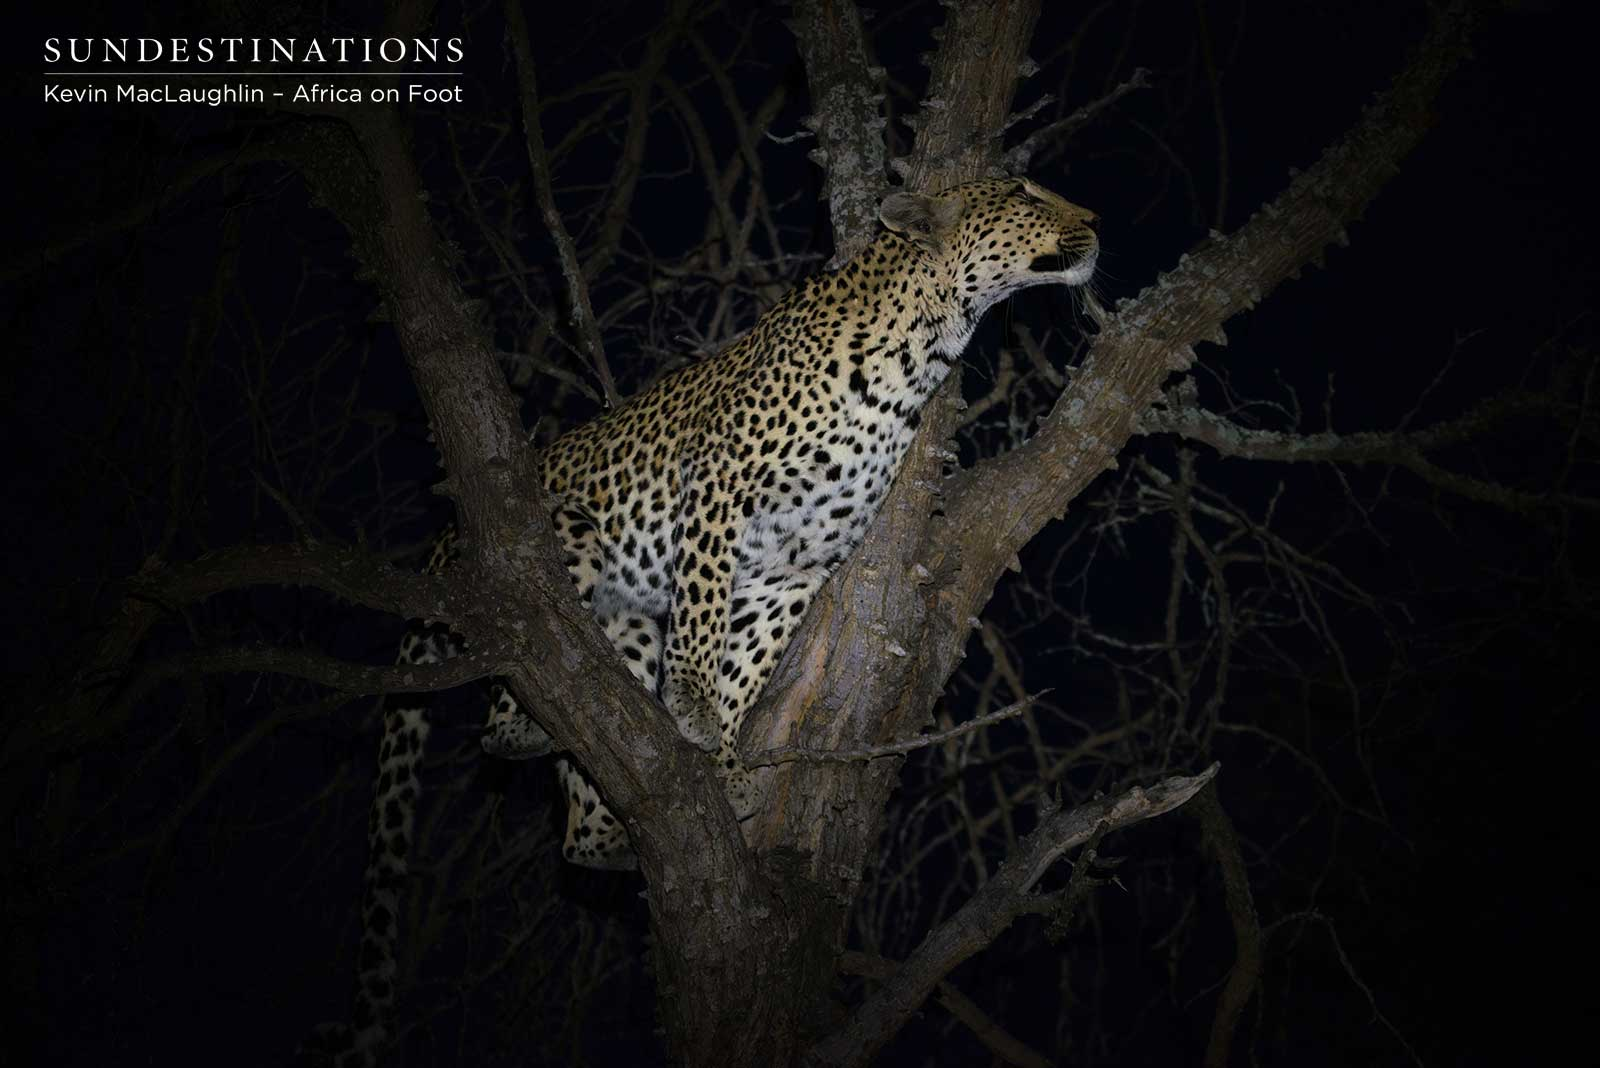 Lions Take Down Prey while Leopard Sits in Tree Above